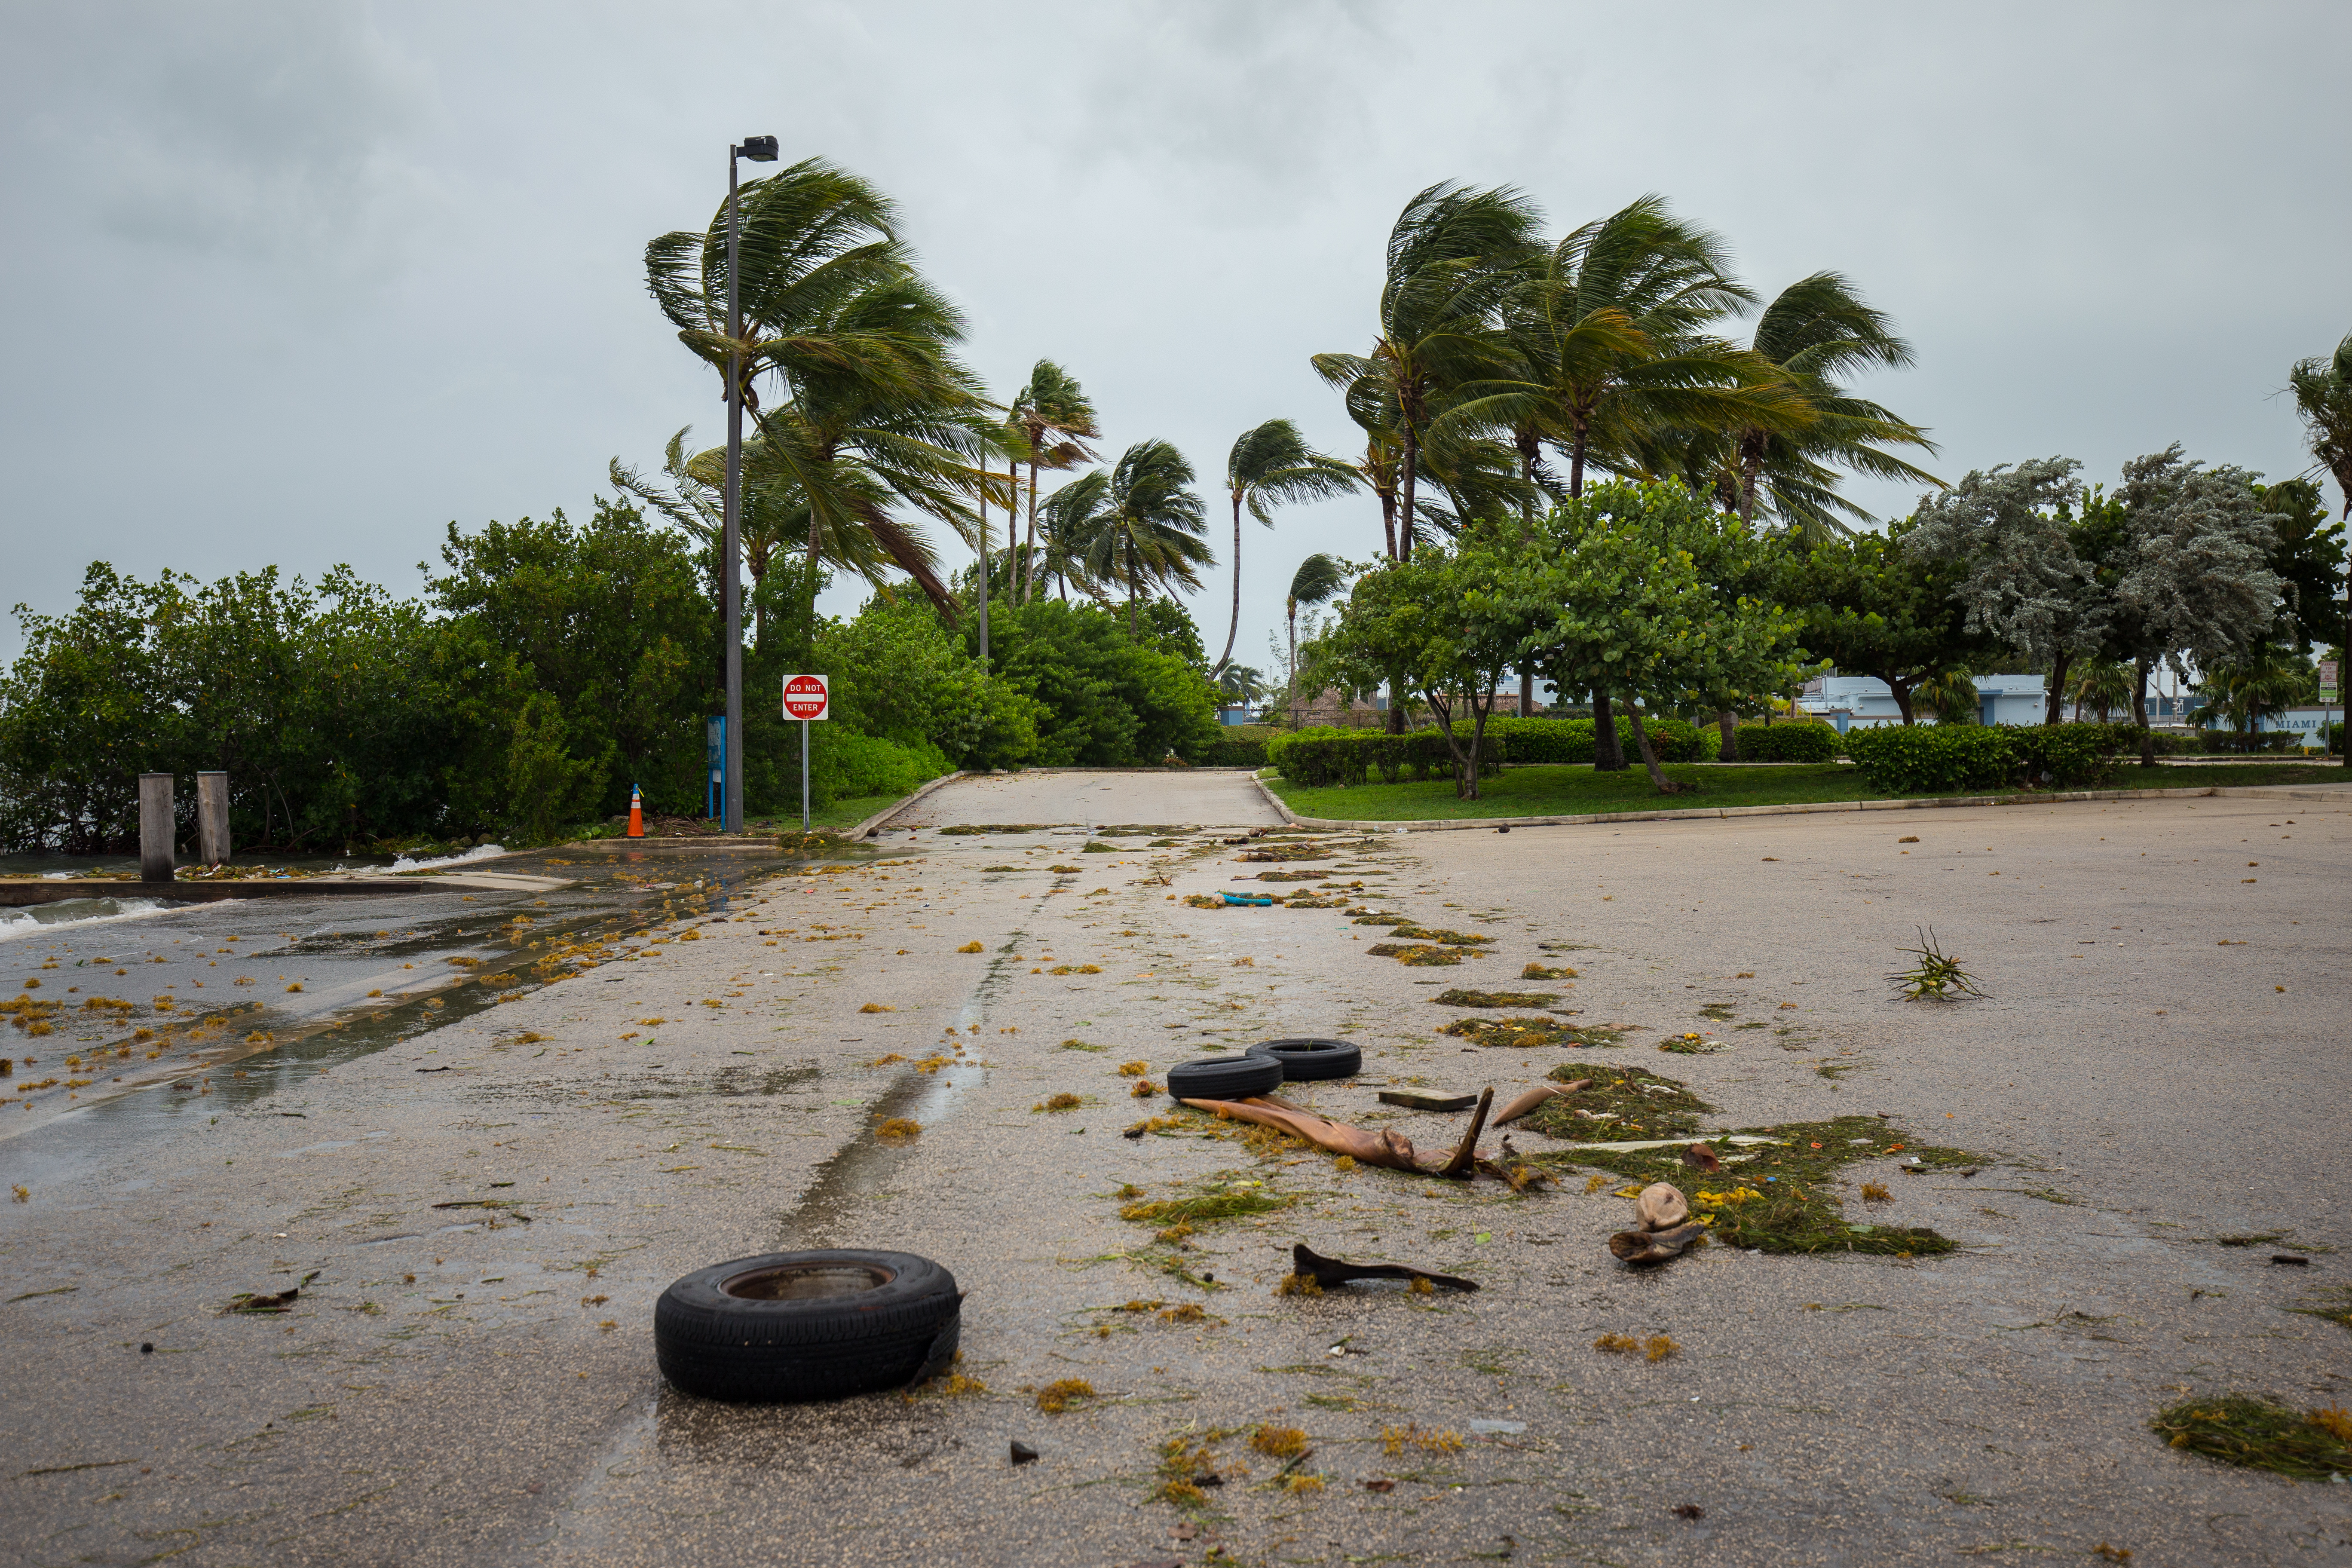 Canadian cannabis firm pledges 10% of revenues to Hurricane Irma victims